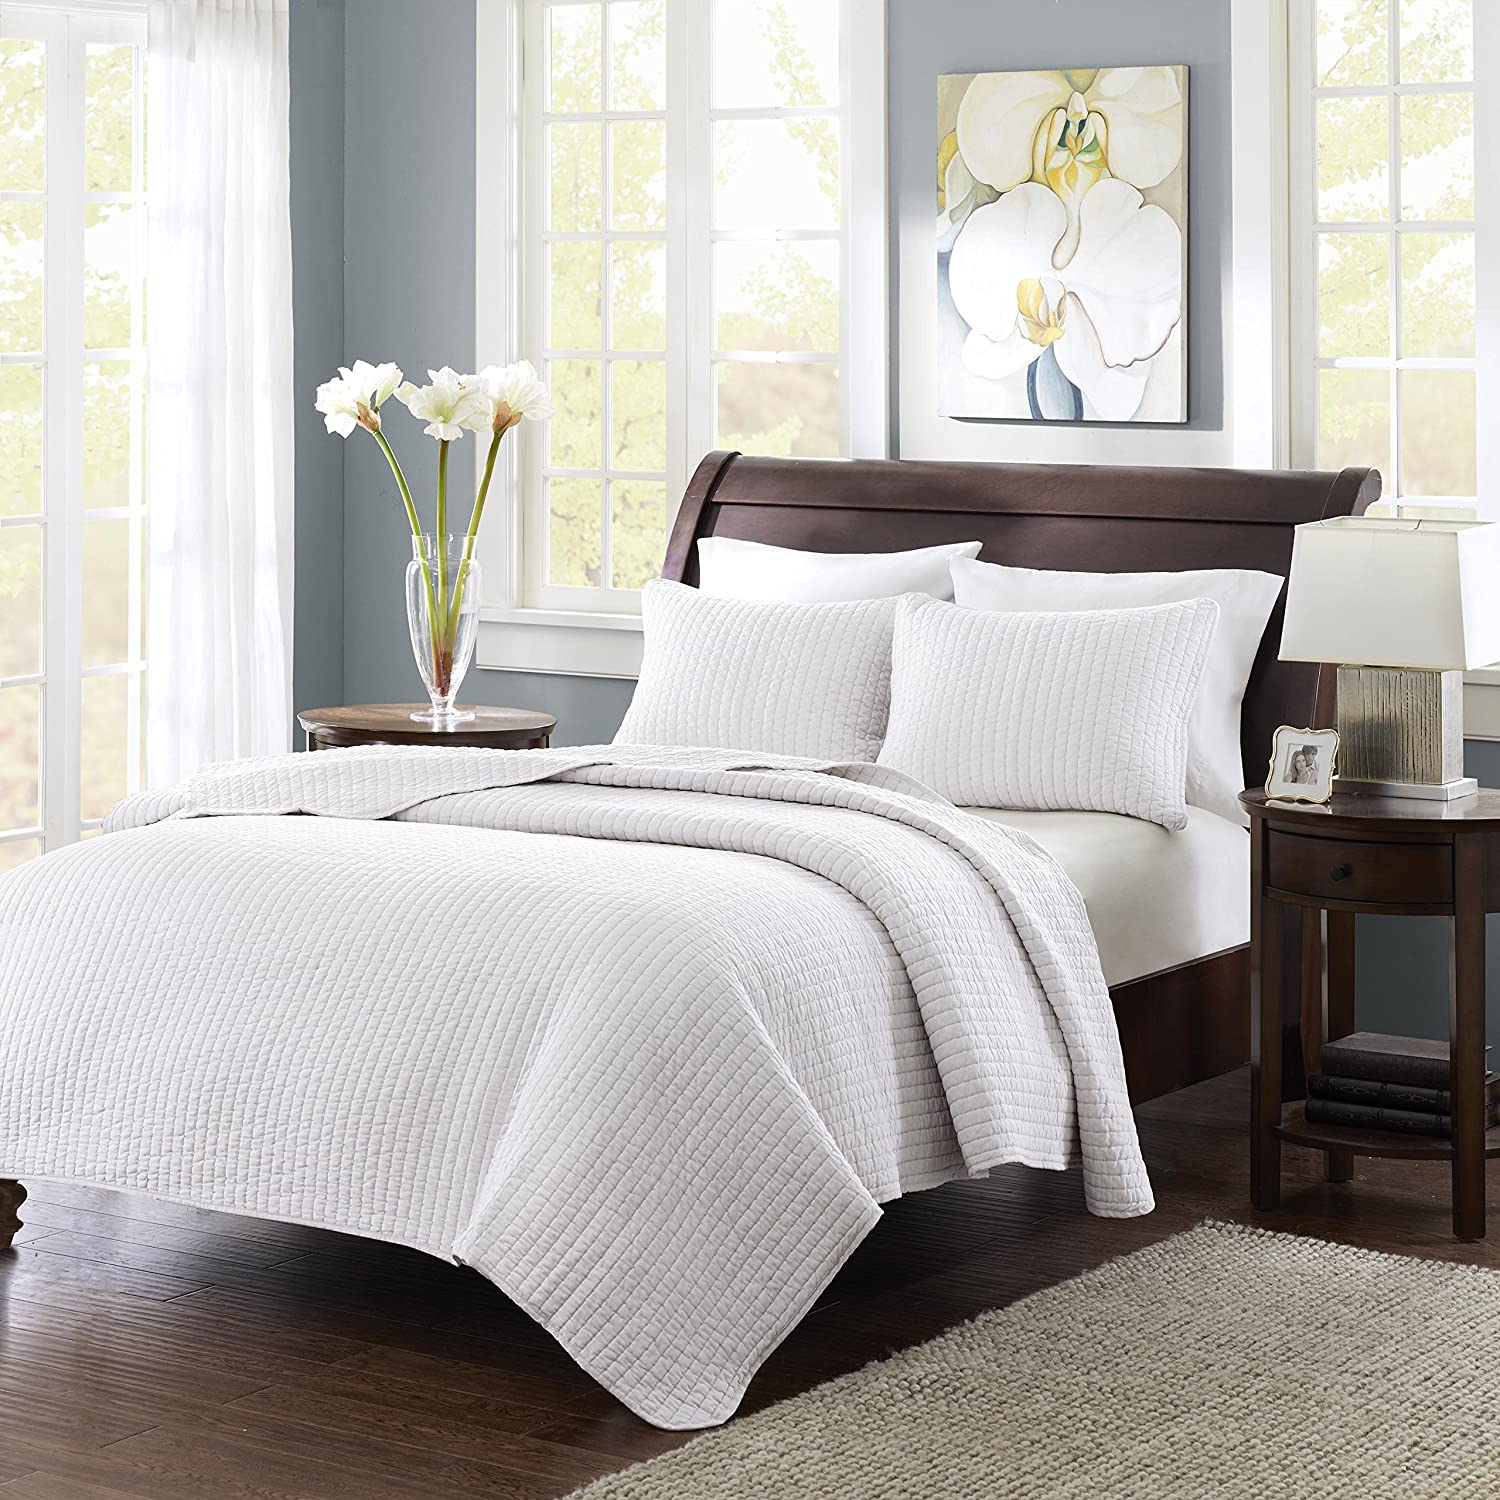 Amazon.com: Madison Park Keaton 3 Piece Coverlet Set, Full/Queen, White:  Home U0026 Kitchen